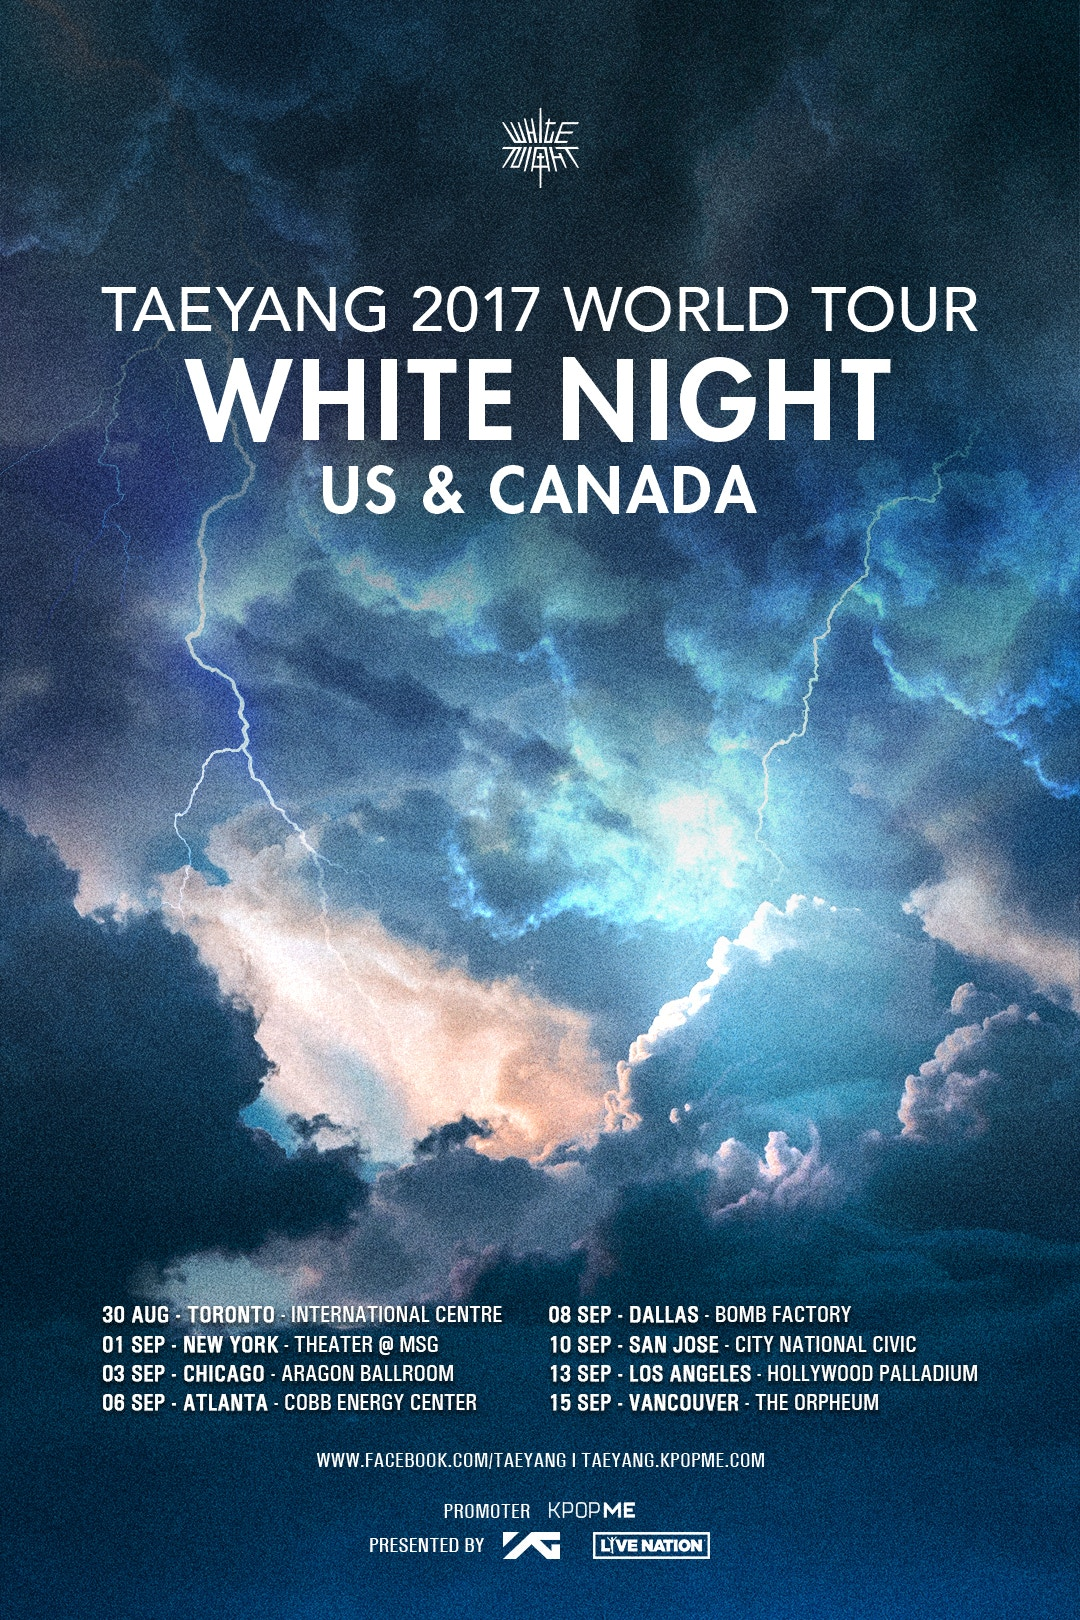 taeyang whitenight